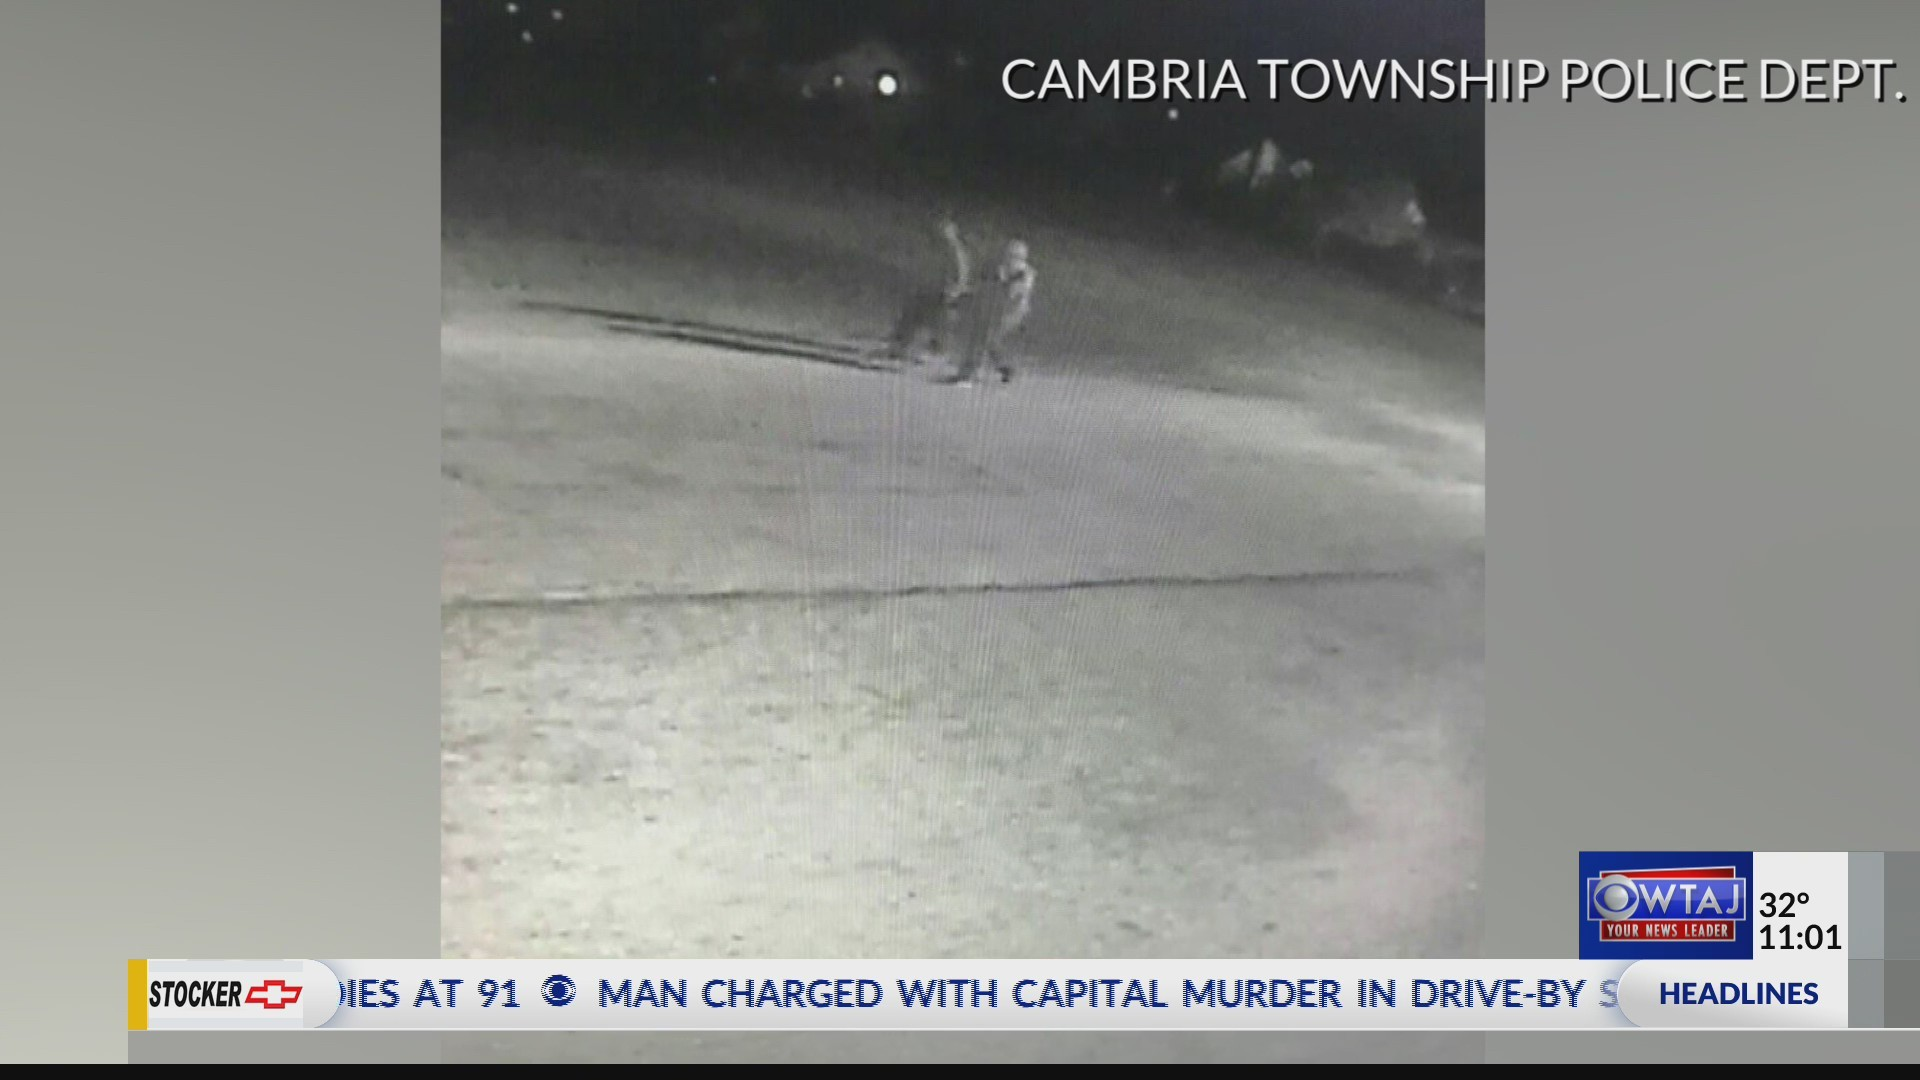 Police search for car thief suspects